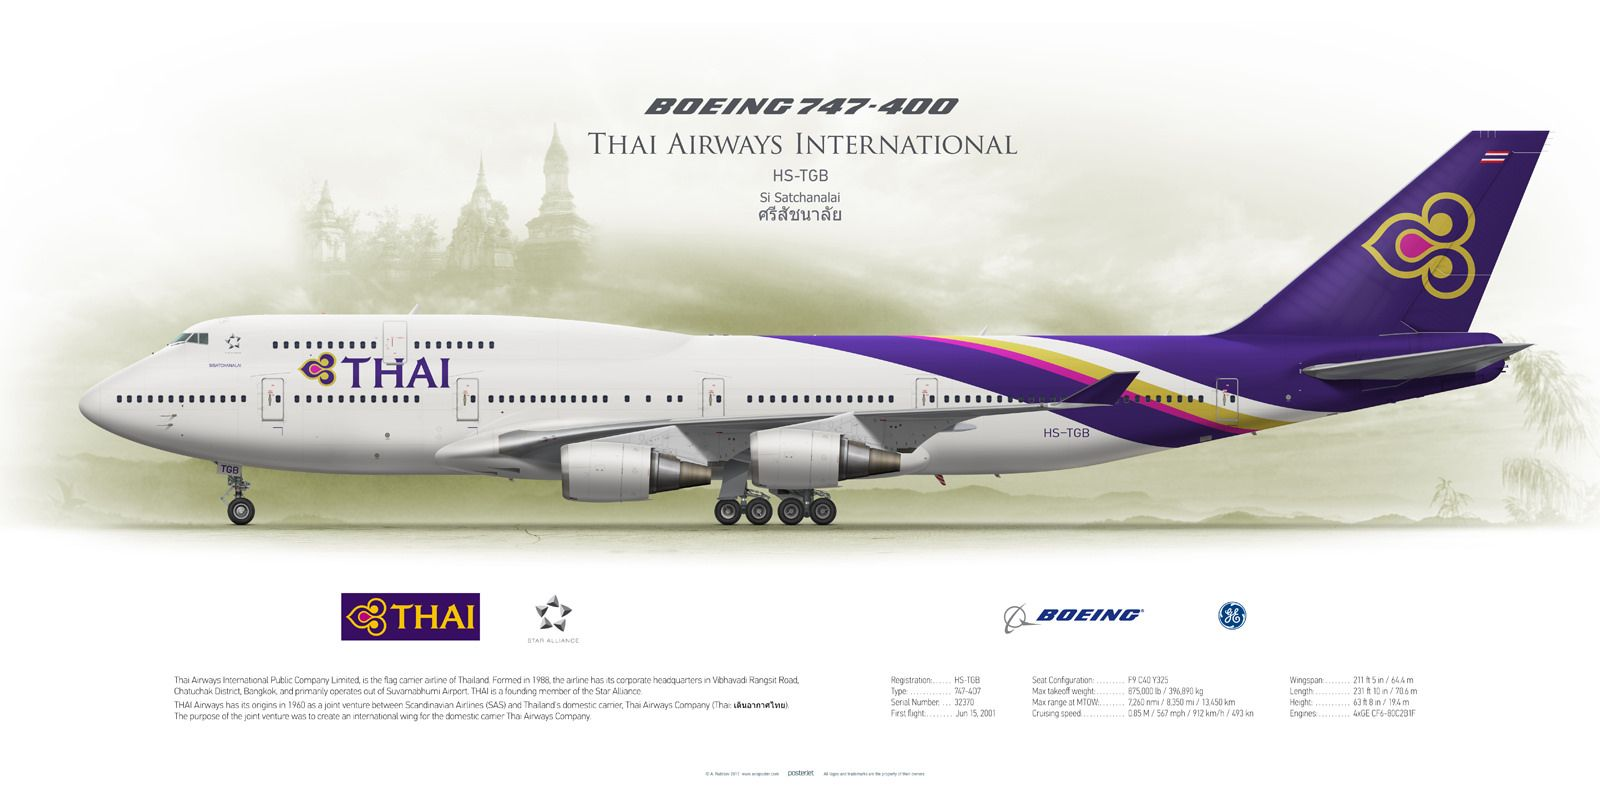 Boeing 747 400 thai airways international hs tgb thai for Plan de cabine boeing 747 400 corsair